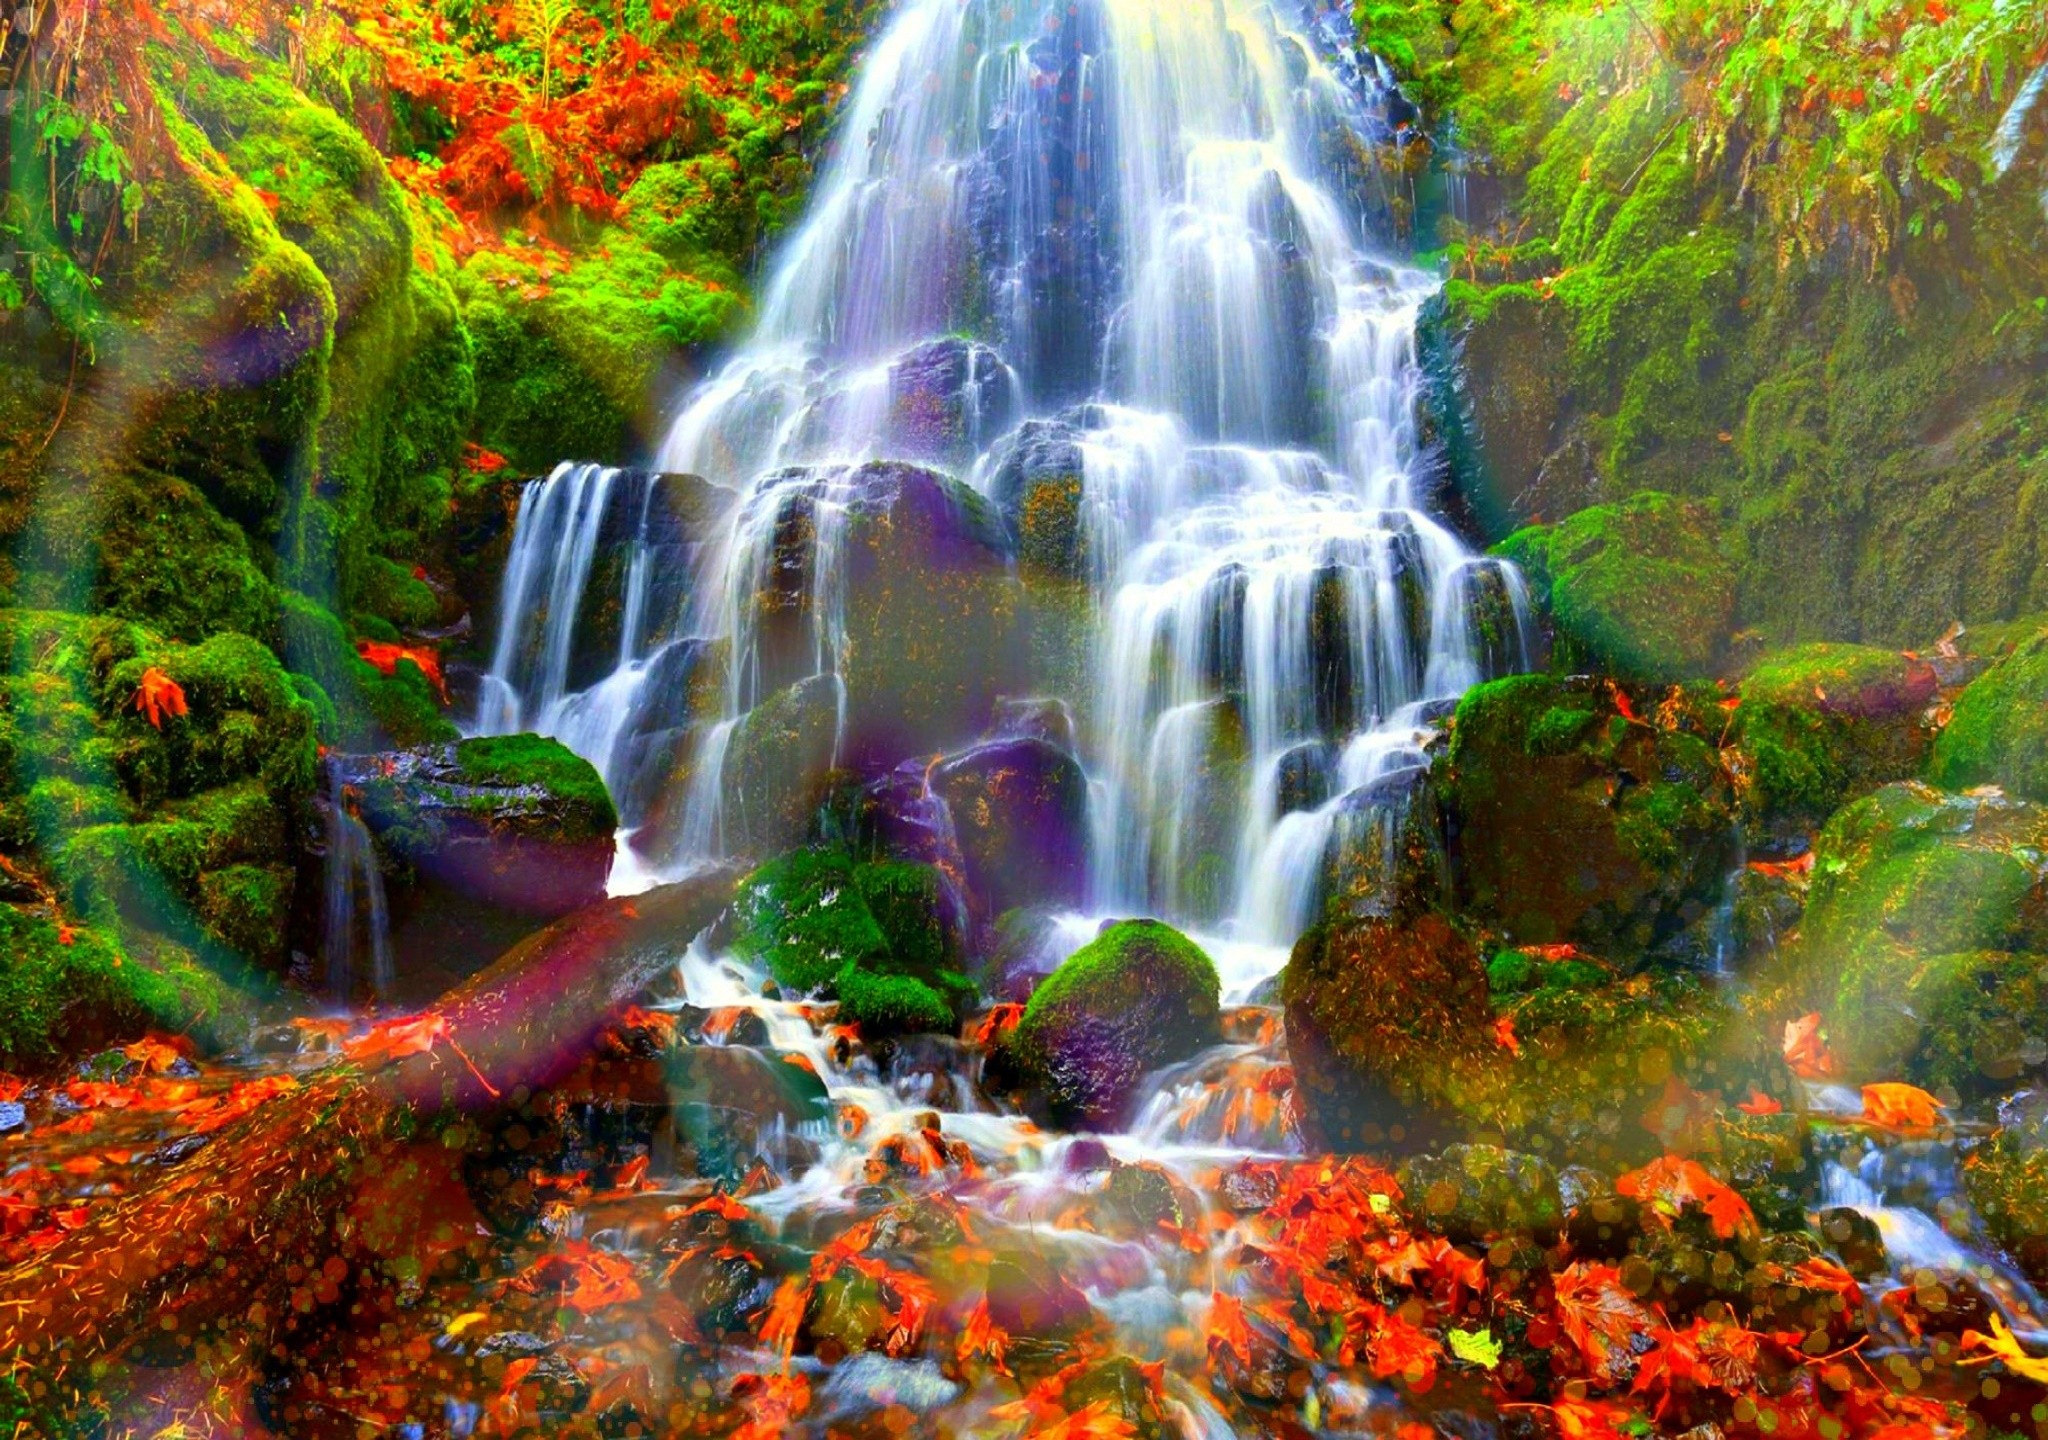 Desktop Wallpaper Fall Flowers Autumn Forest Water Cascades Full Hd Wallpaper And